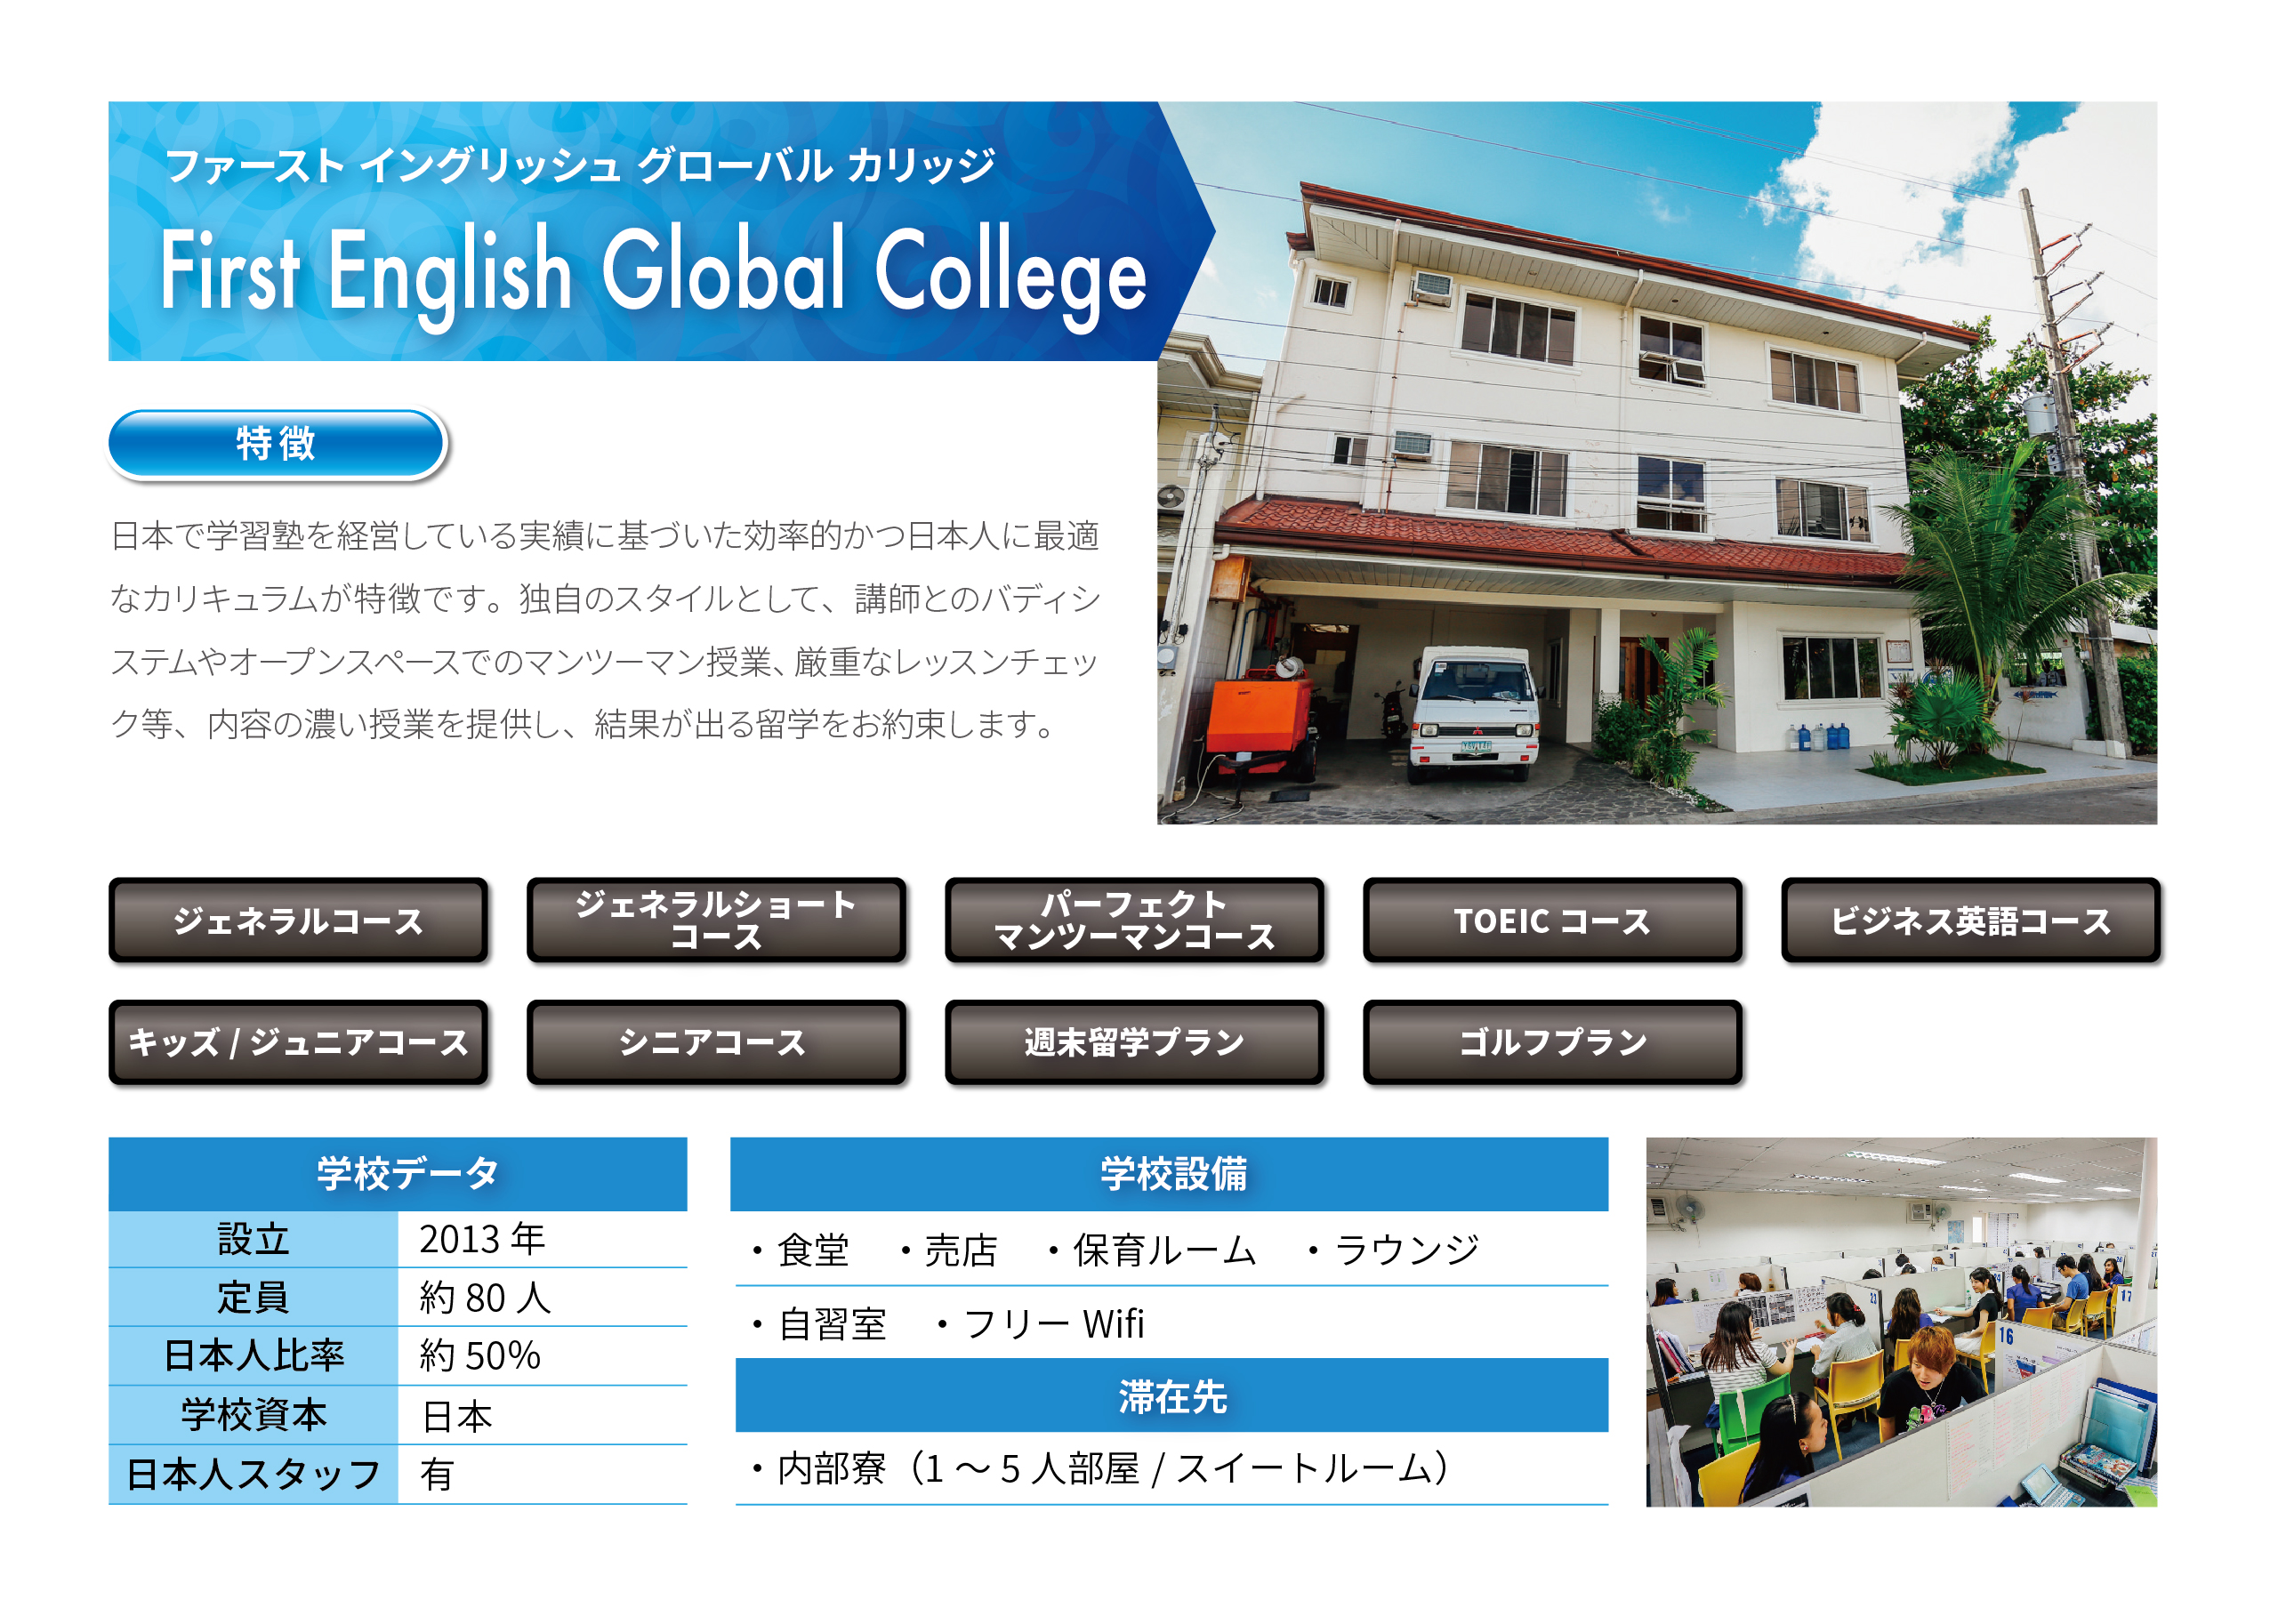 First English Global College 学校案内